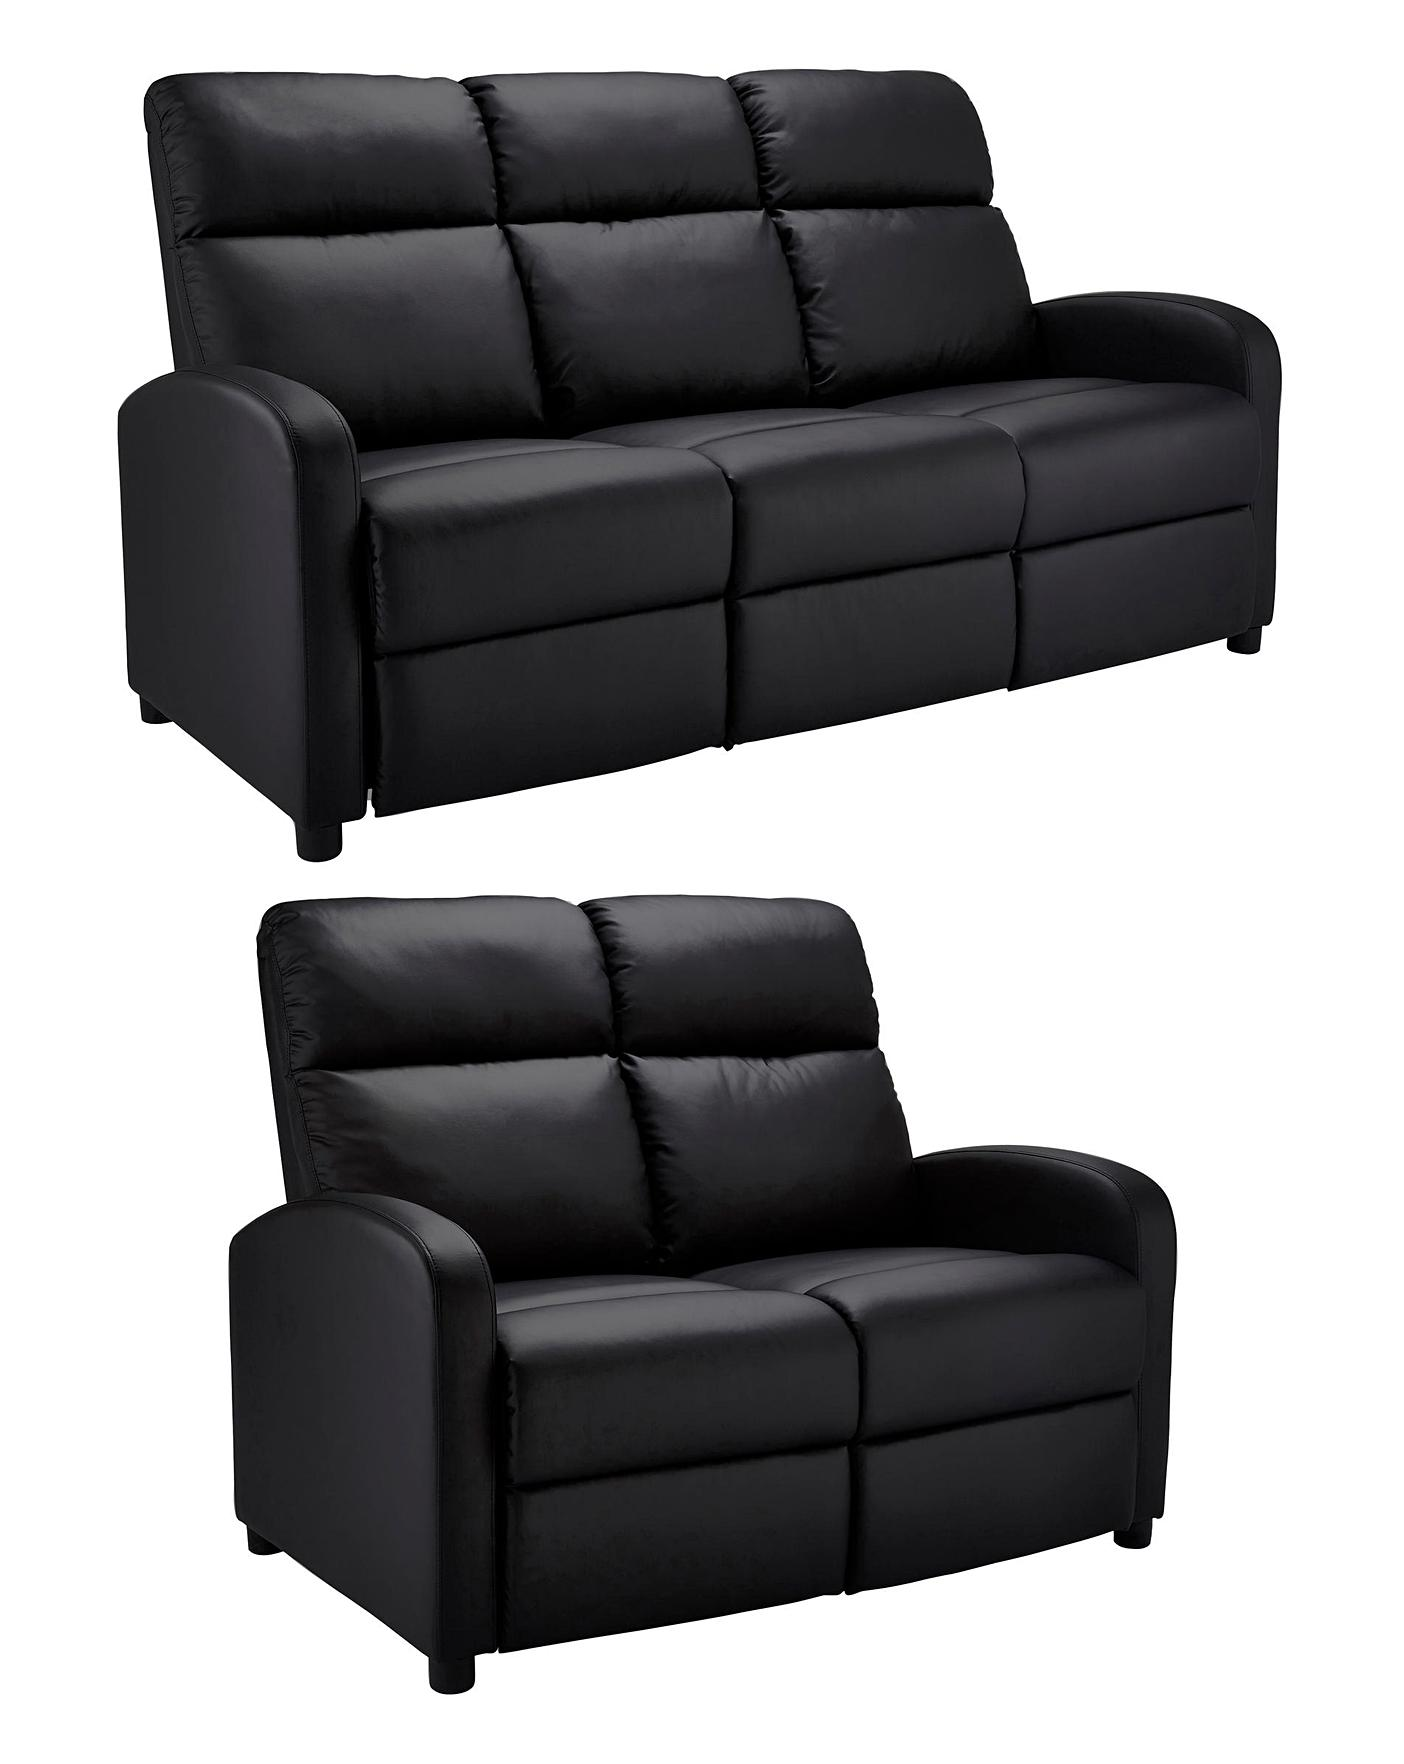 Hudson Sofa Collection Reviews Hudson 3 Plus 2 Seater Recliner Sofa